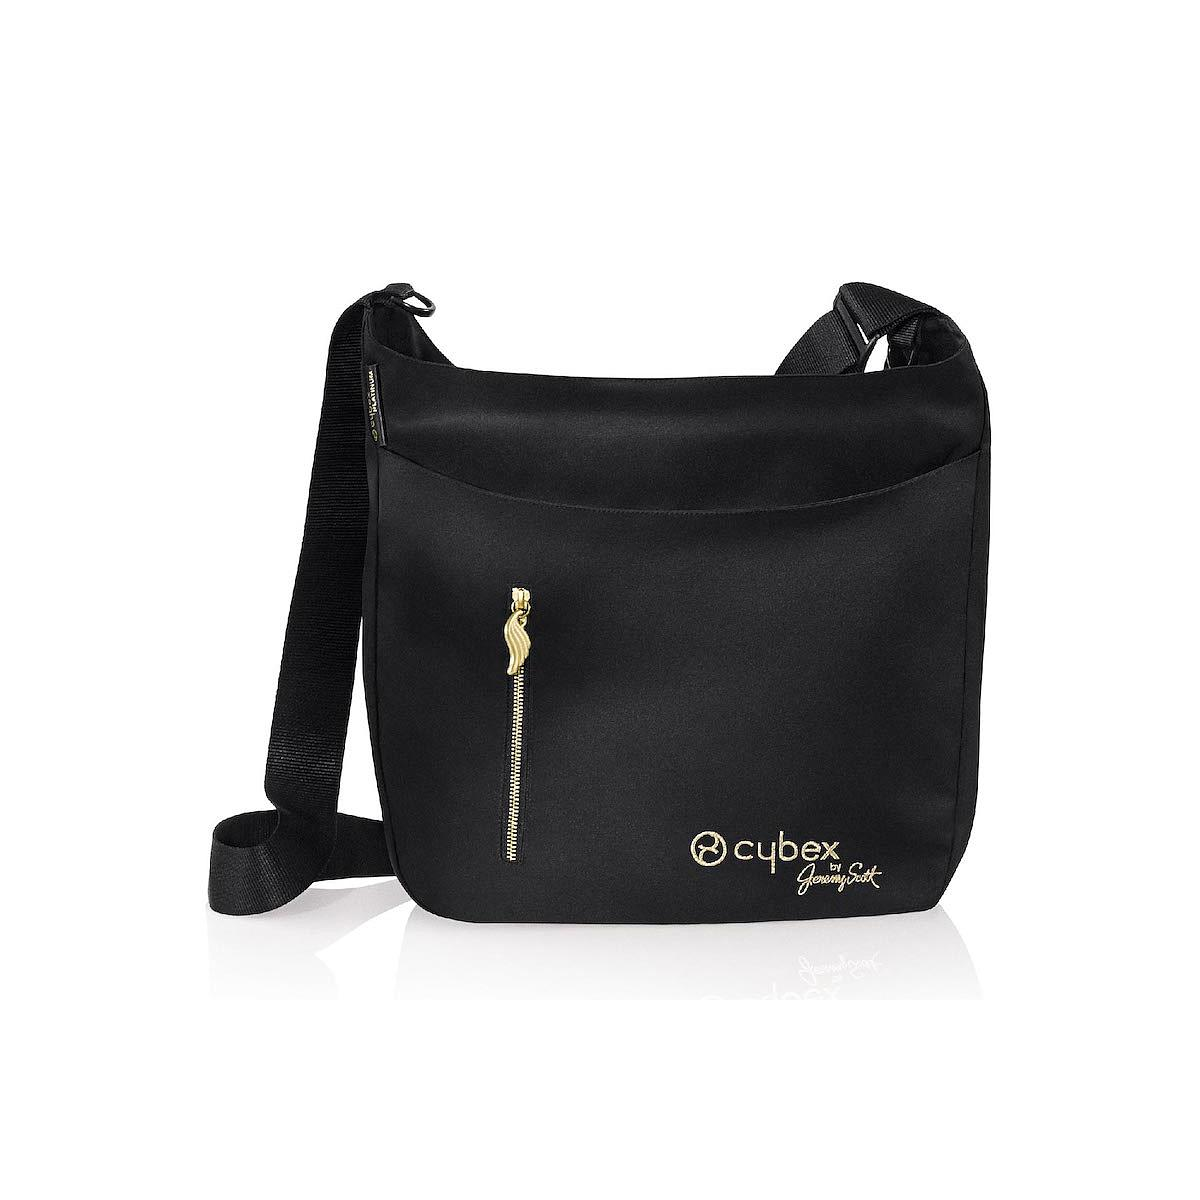 Sac à langer JEREMY SCOTT Cybex wings-black